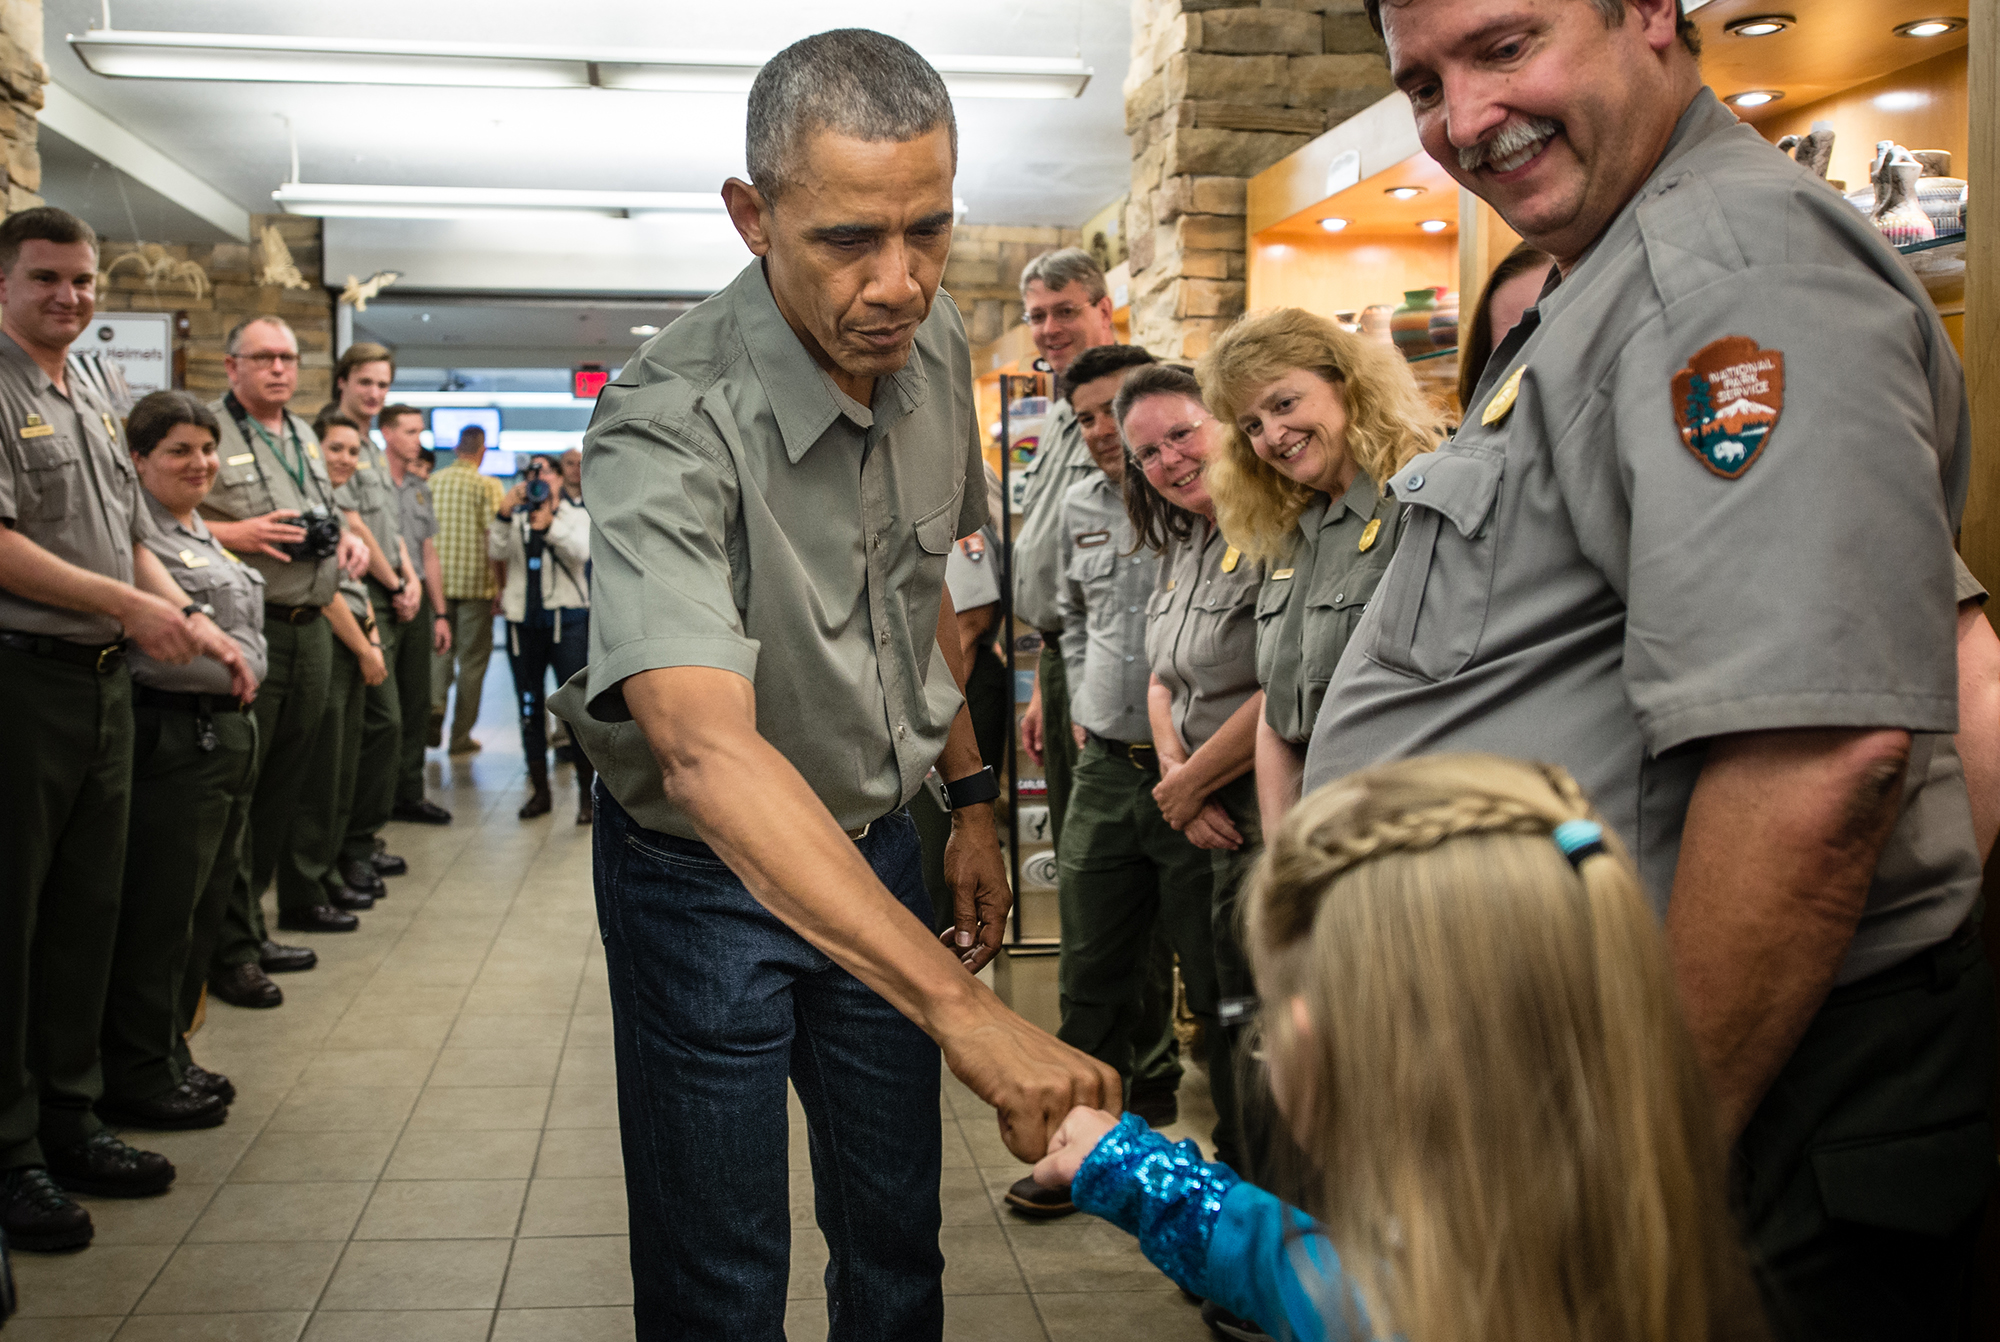 President Barack Obama high fives a young girl during his visit to Carlsbad Caverns in New Mexico on June 2016.